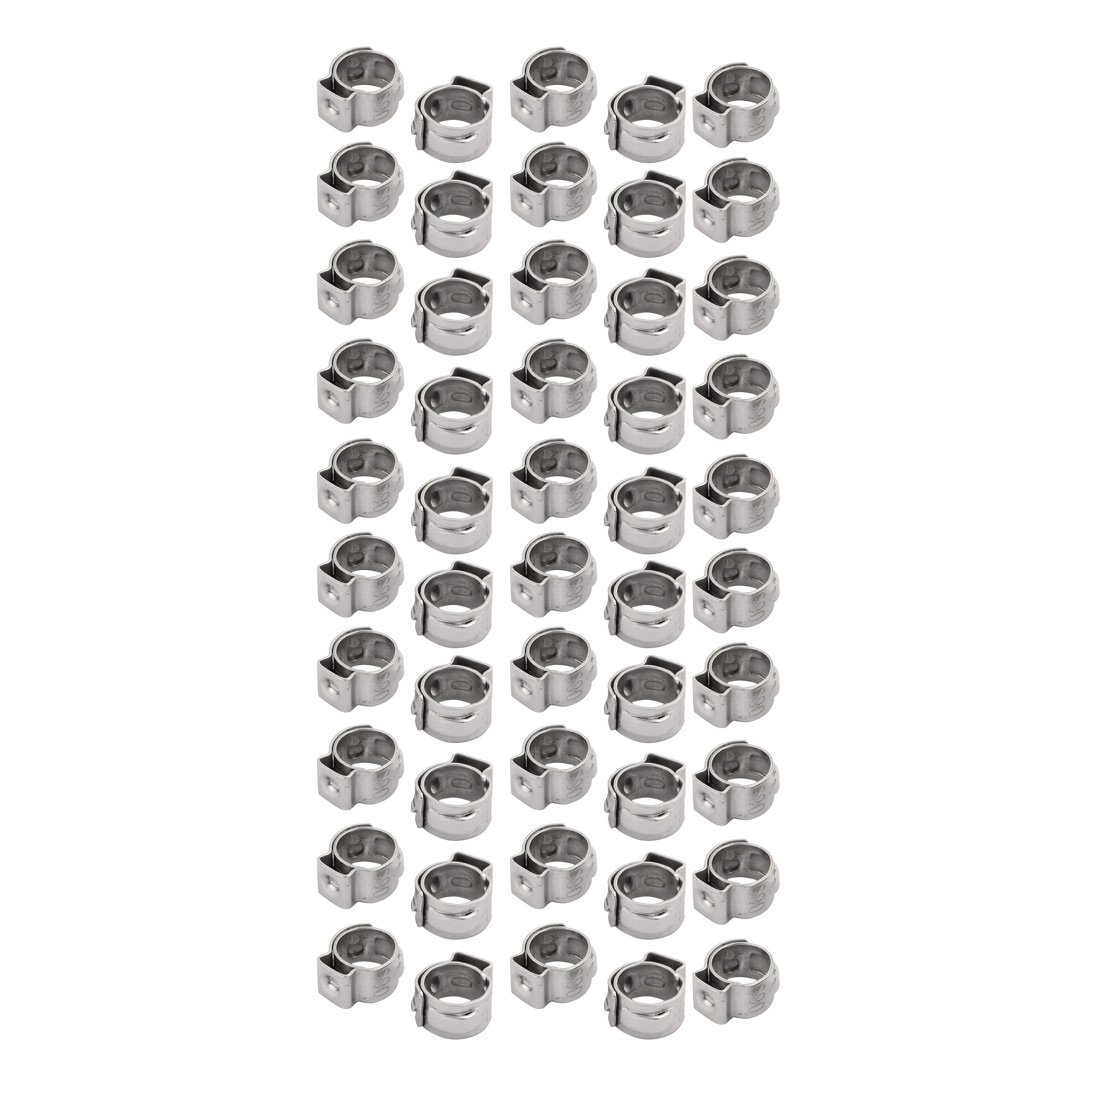 uxcell 5.3mm-6.5mm 304 Stainless Steel Adjustable Tube Hose Clamps Silver Tone 50pcs